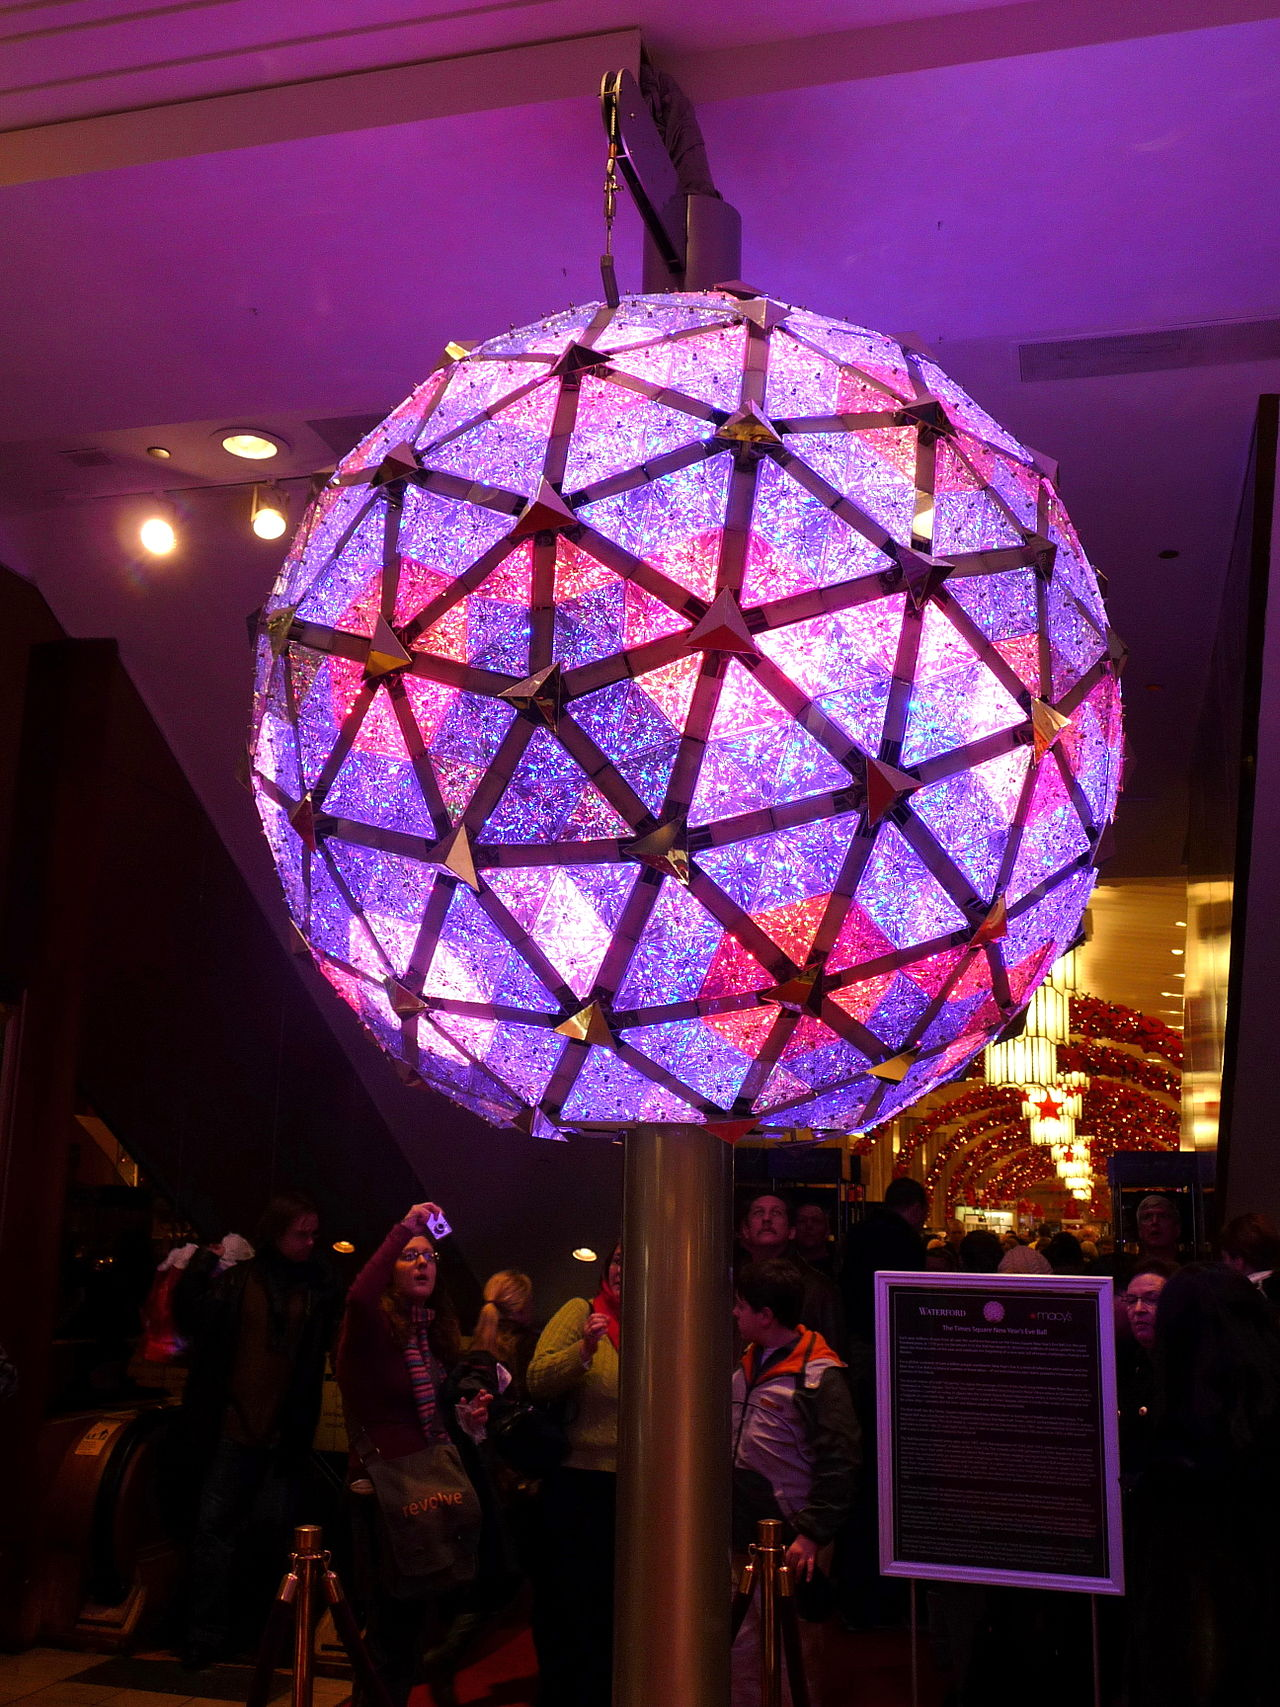 force___flex_Times_Square_New_Year's_Eve_Ball_2009.jpg